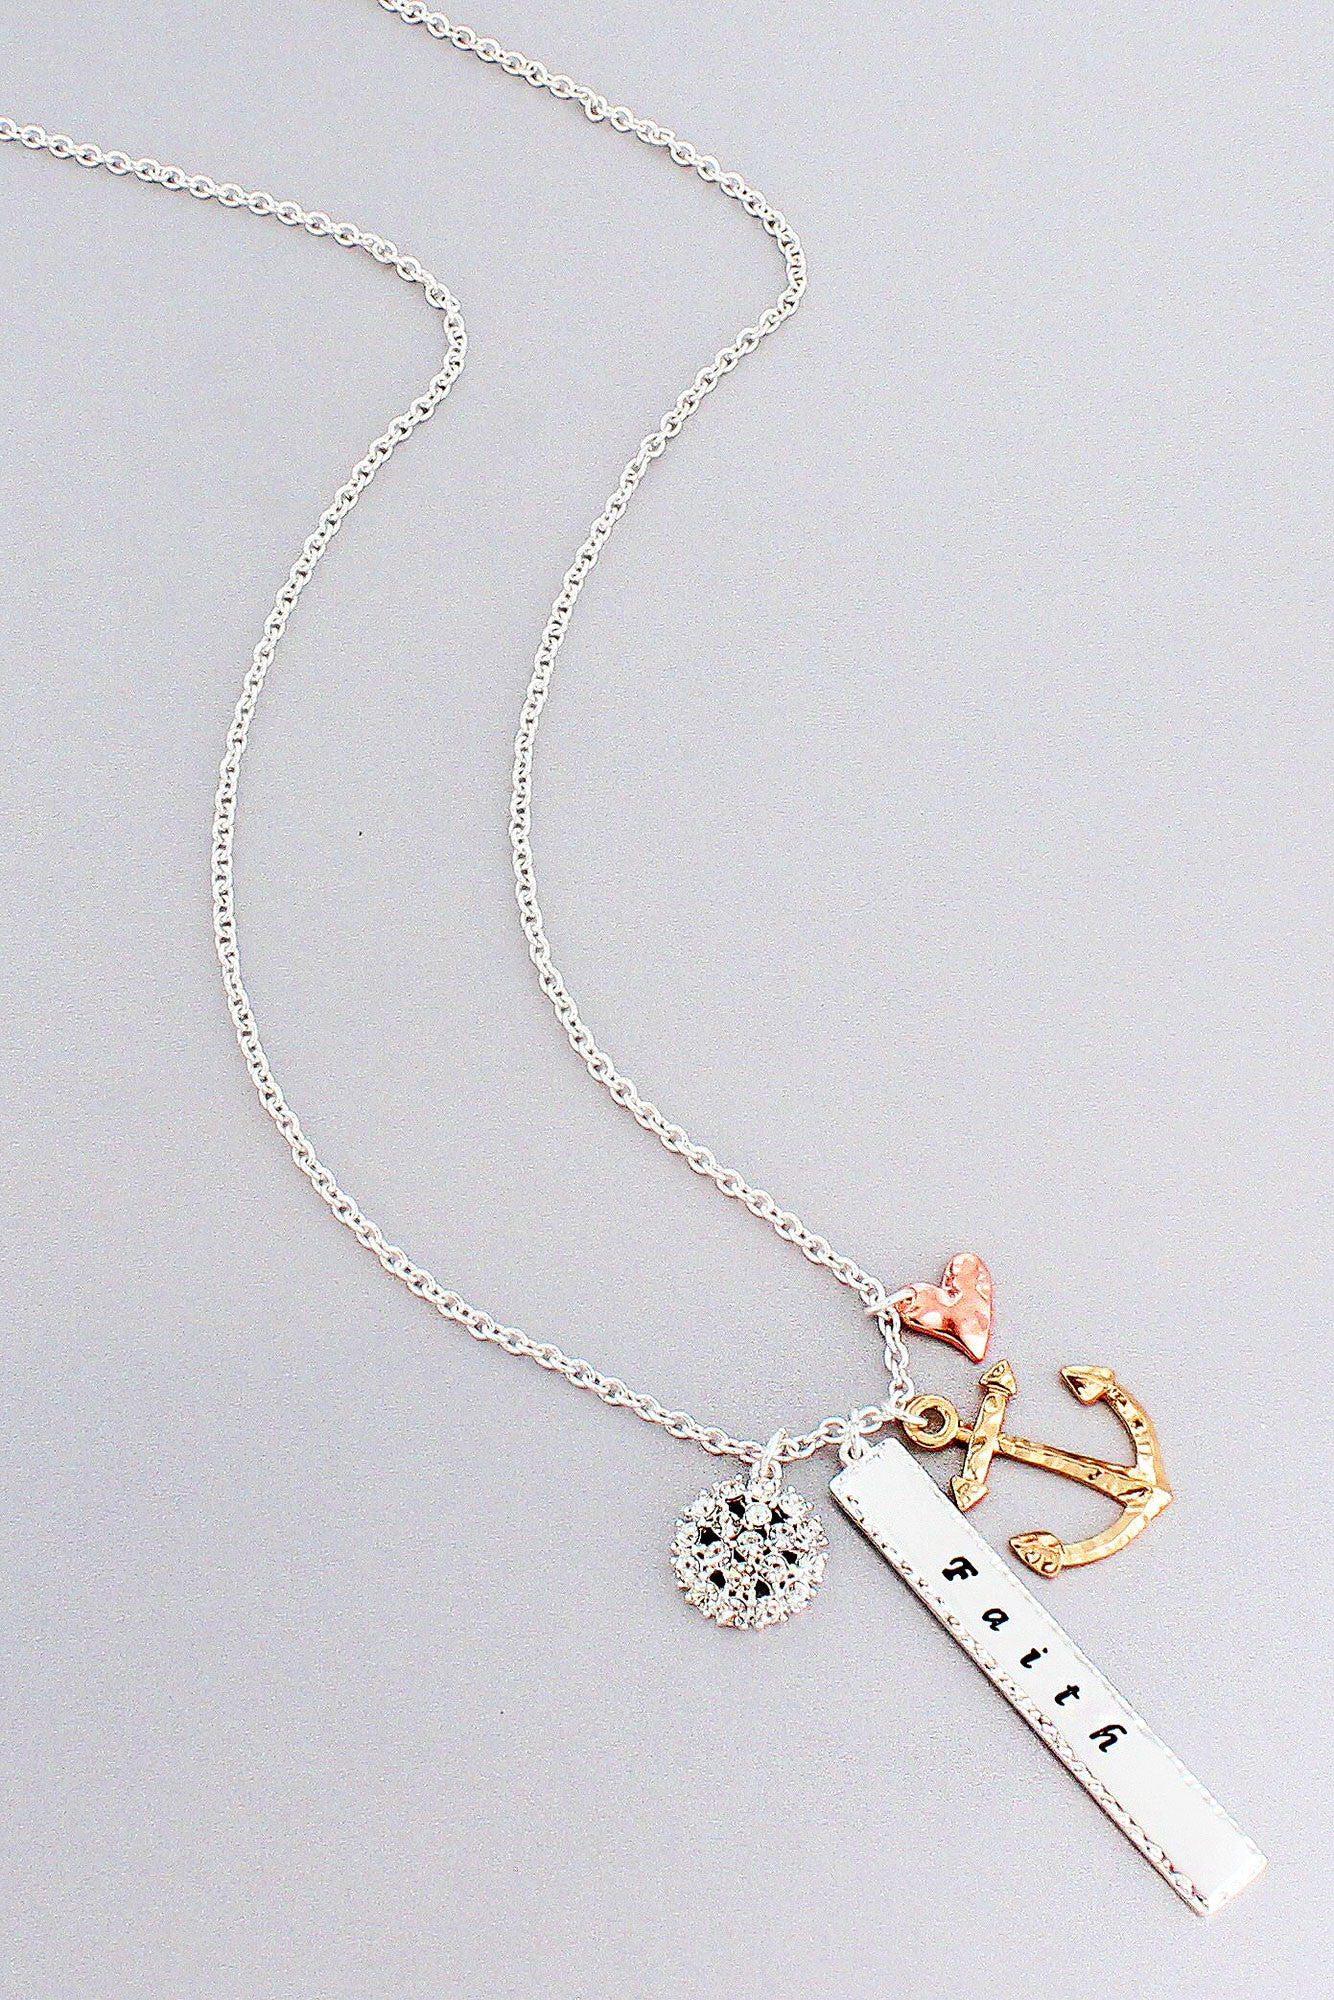 da3d64bffb51b Tri-Tone 'Faith' Bar and Anchor Cluster Pendant Necklace